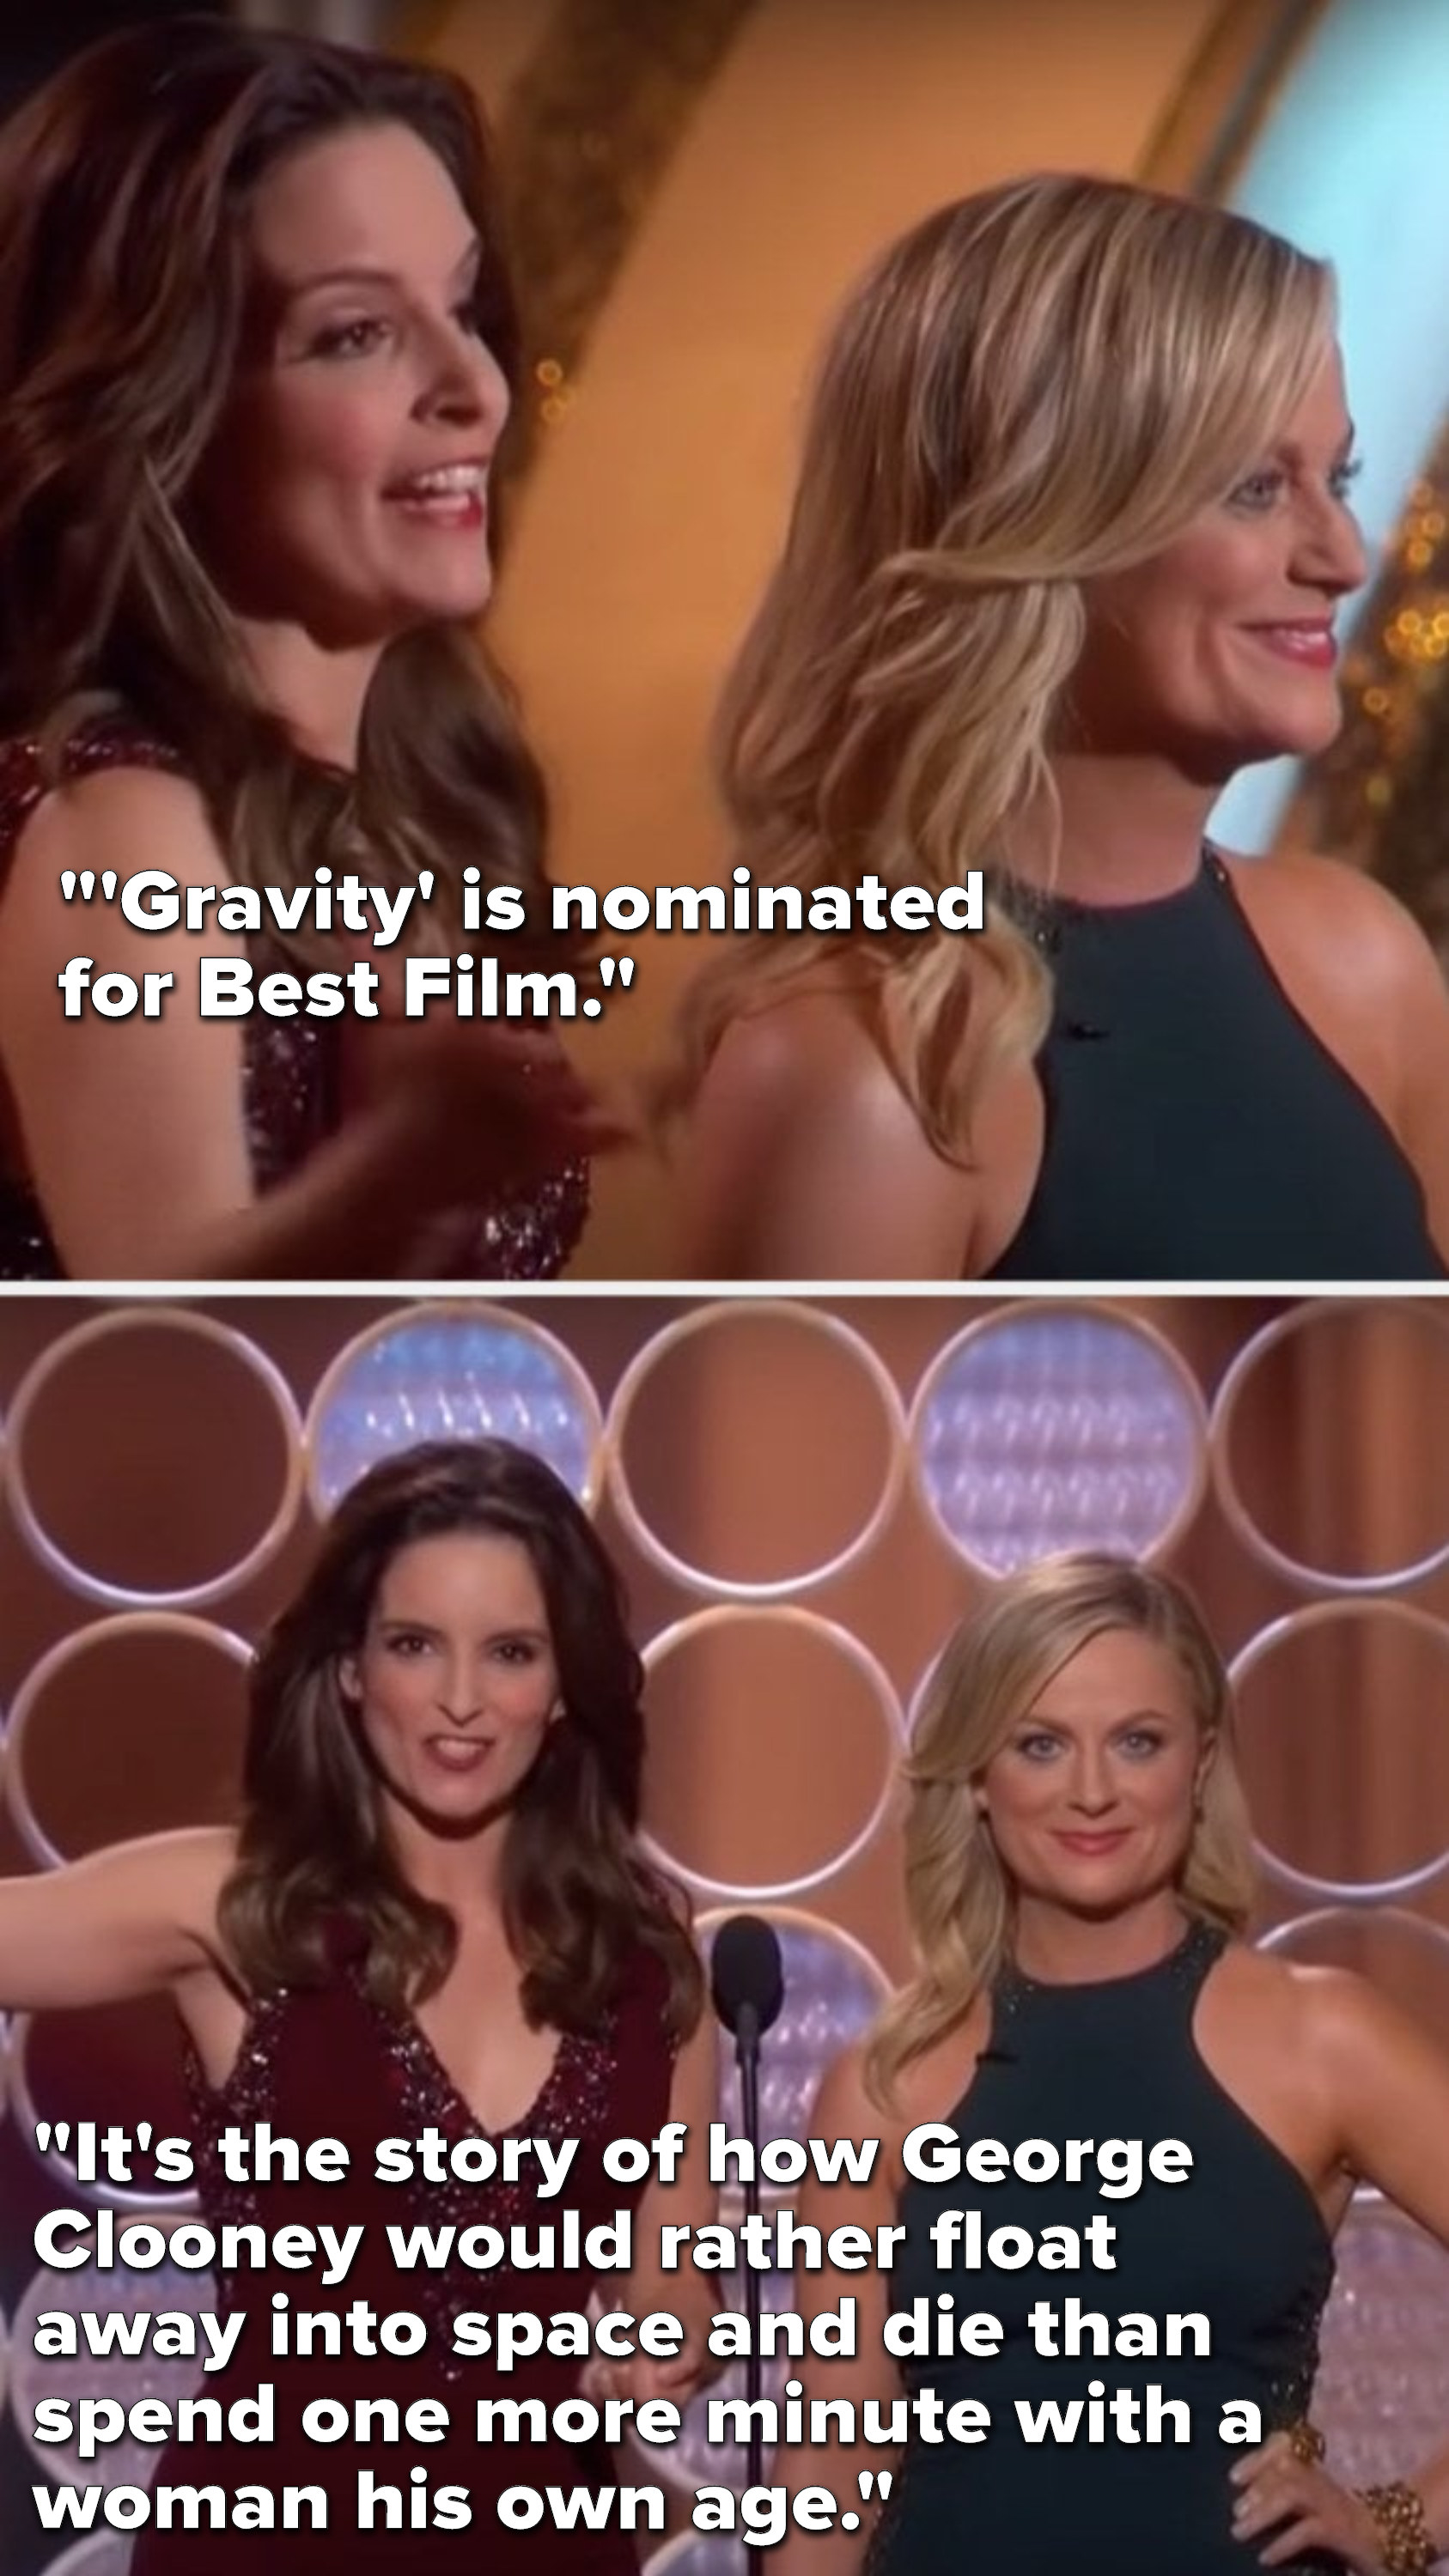 """Fey says, """"'Gravity' is nominated for Best Film, it's the story of how George Clooney would rather float away into space and die than spend one more minute with a woman his own age"""""""